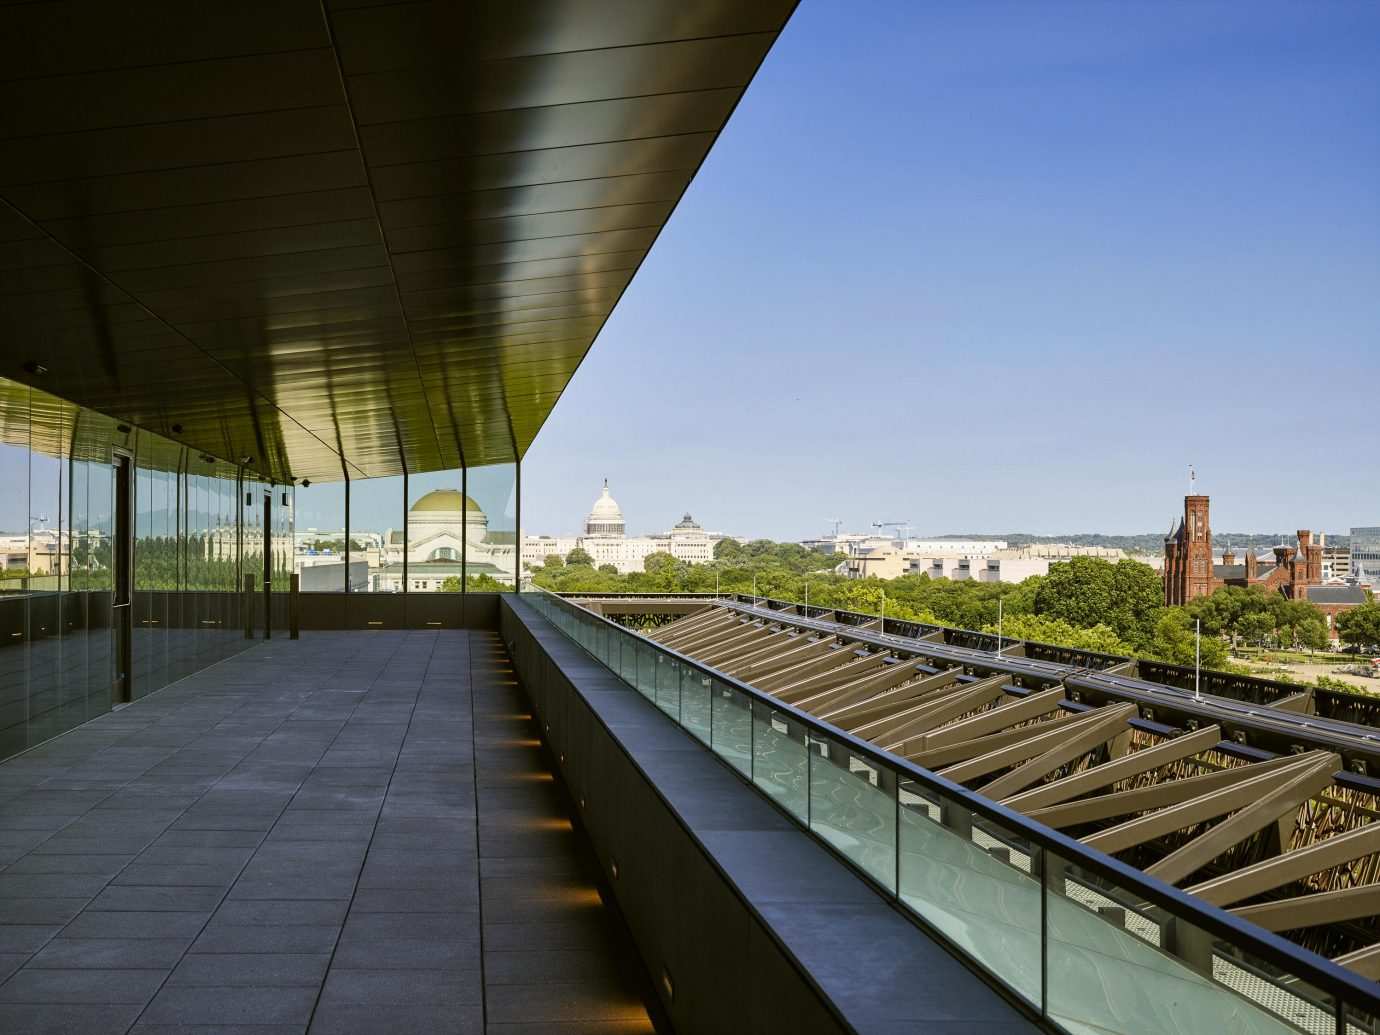 National Museum of African American History and Culture view